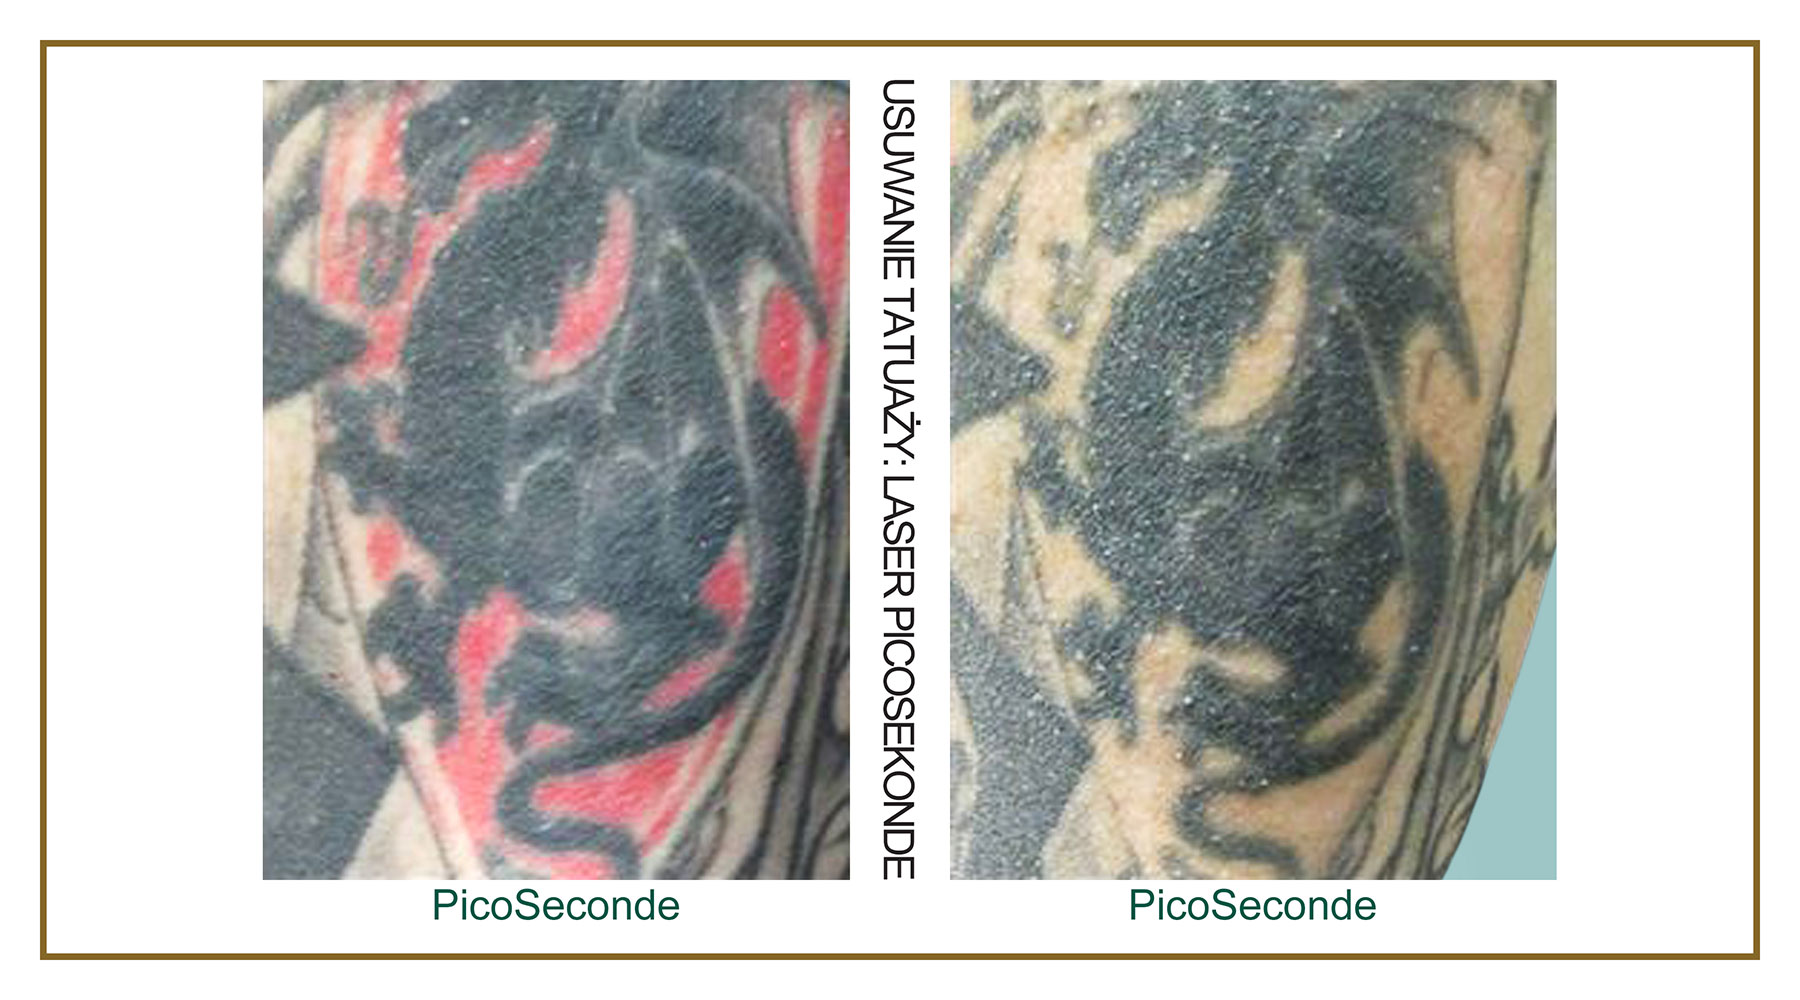 Tattoo-Removal-Laser-PicoSecond-PL-4.jpg